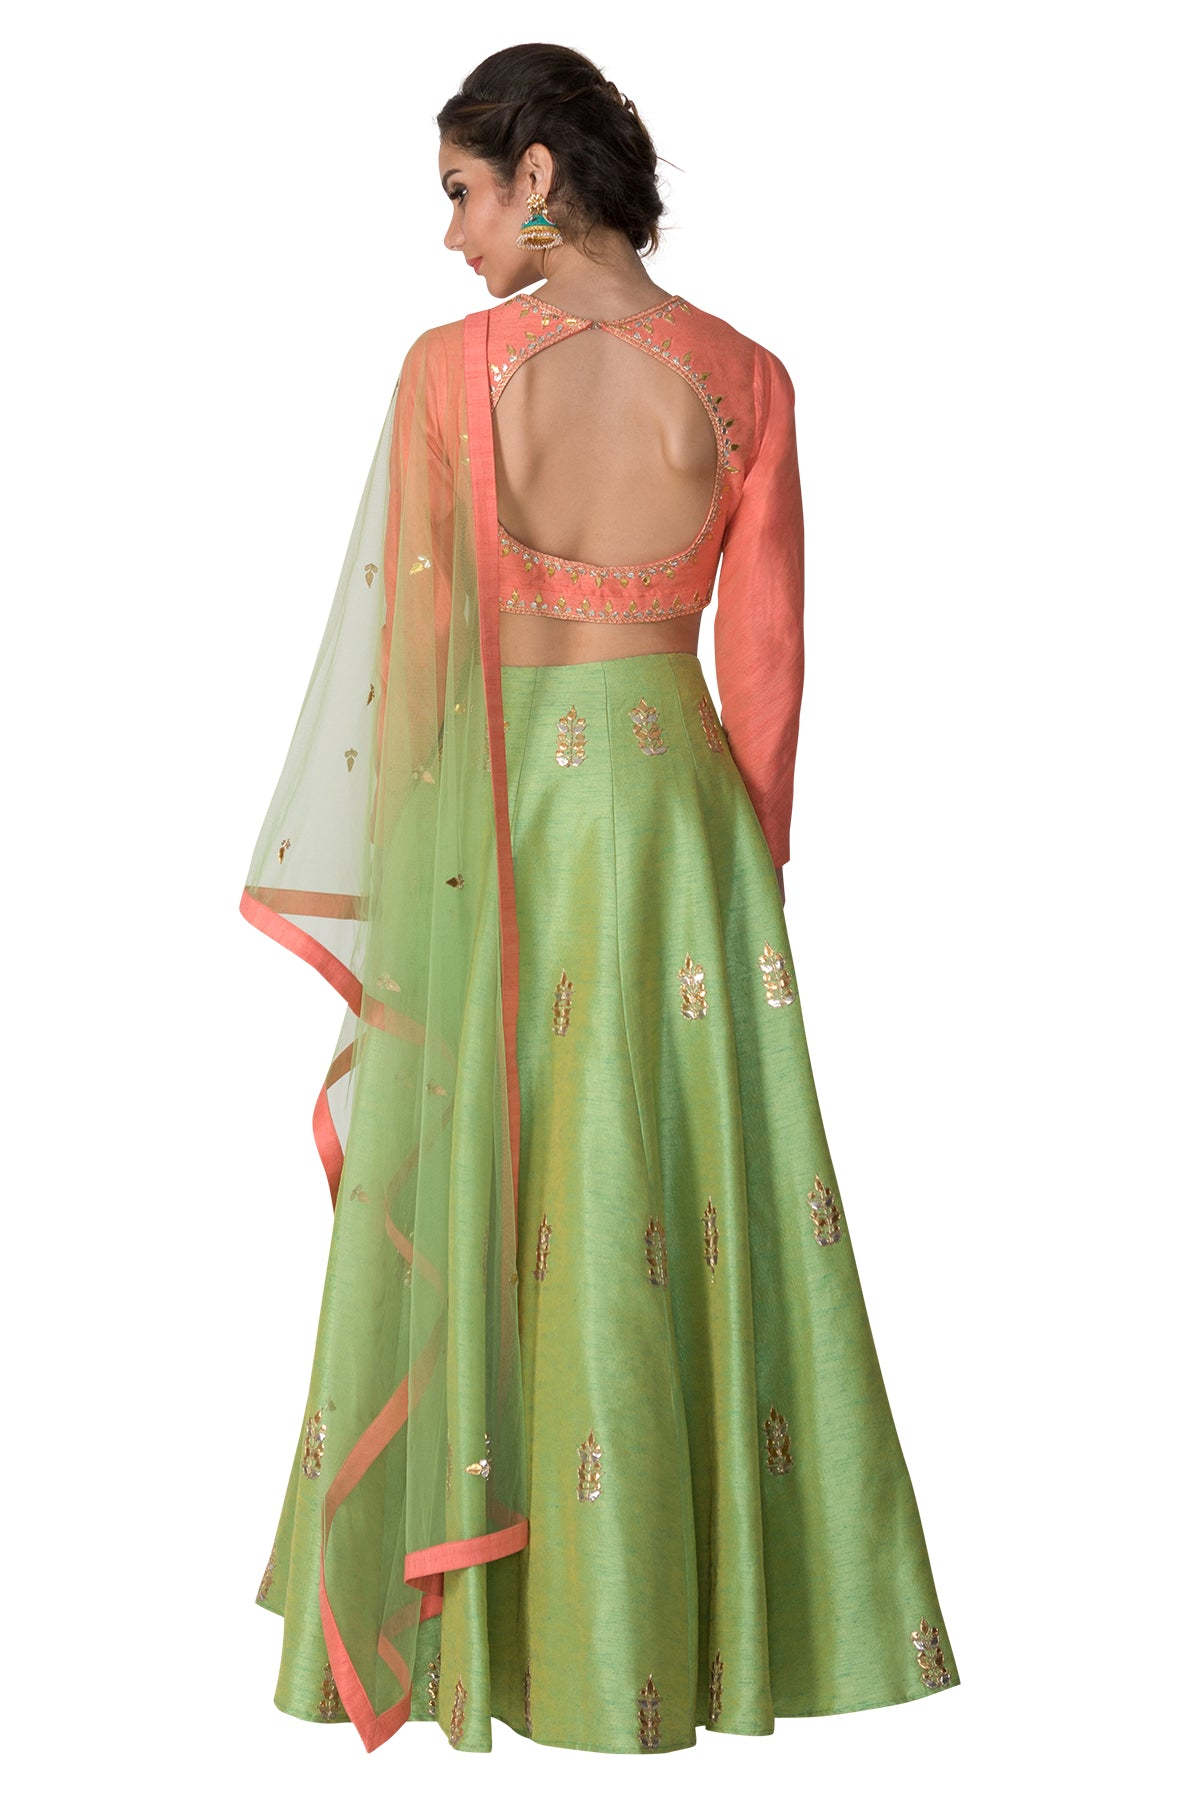 Peach blouse with green skirt and Dupatta